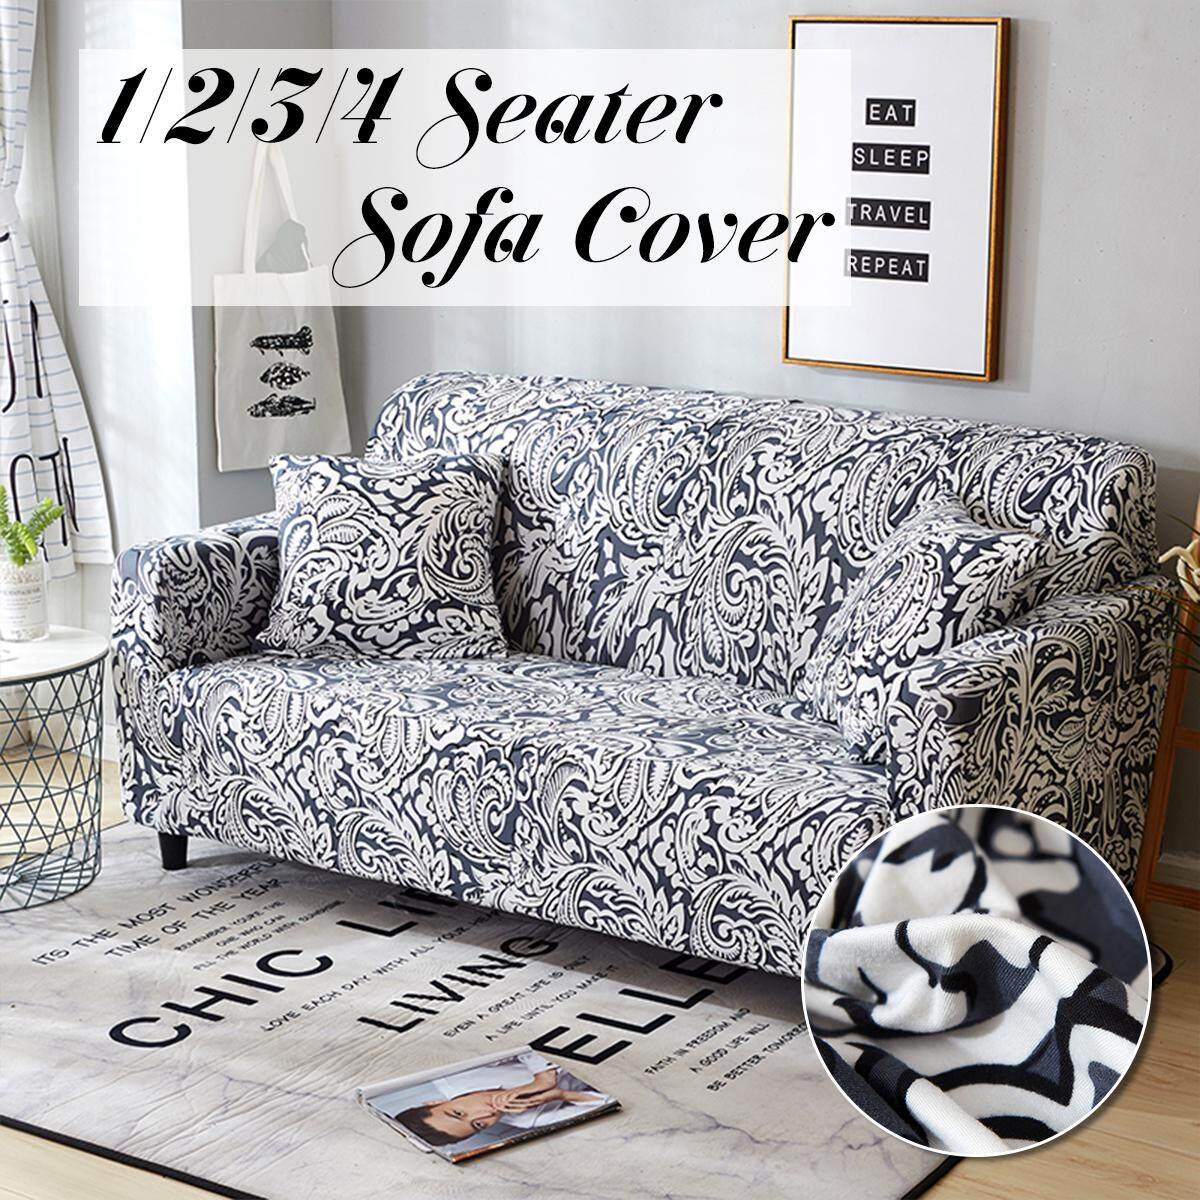 【Free Shipping + Flash Deal】1 Seater Home Soft Elastic Sofa Cover Easy Stretch Slipcover Protector Couch